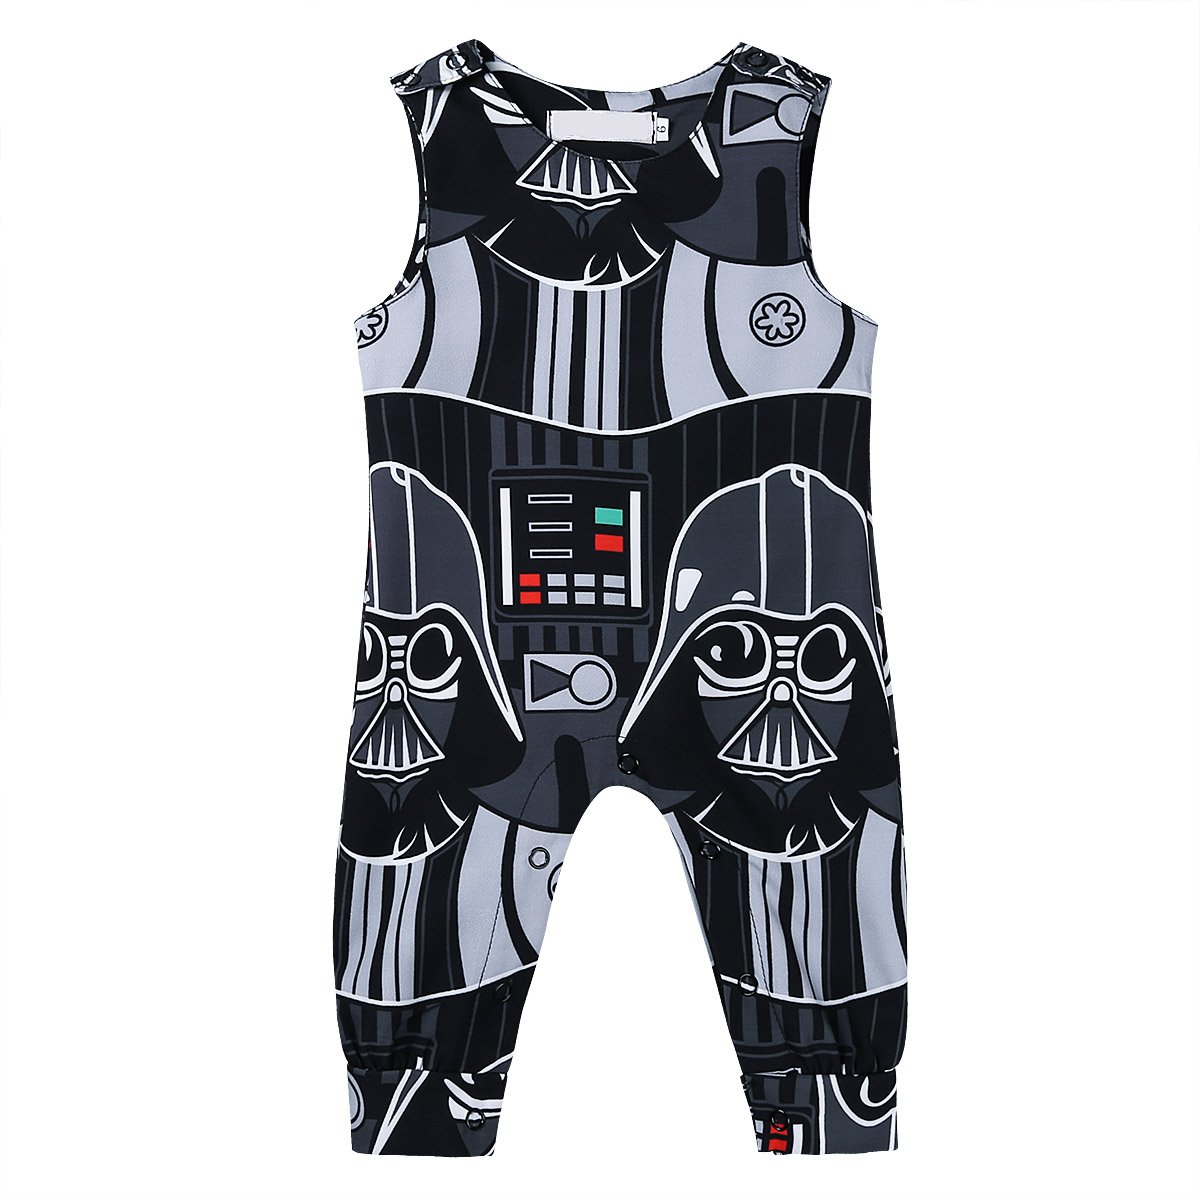 YiZYiF Newborn Baby Boys' Stylish Star Wars Pattern Romper Jumpsuit Playsuit Clothes Outfits